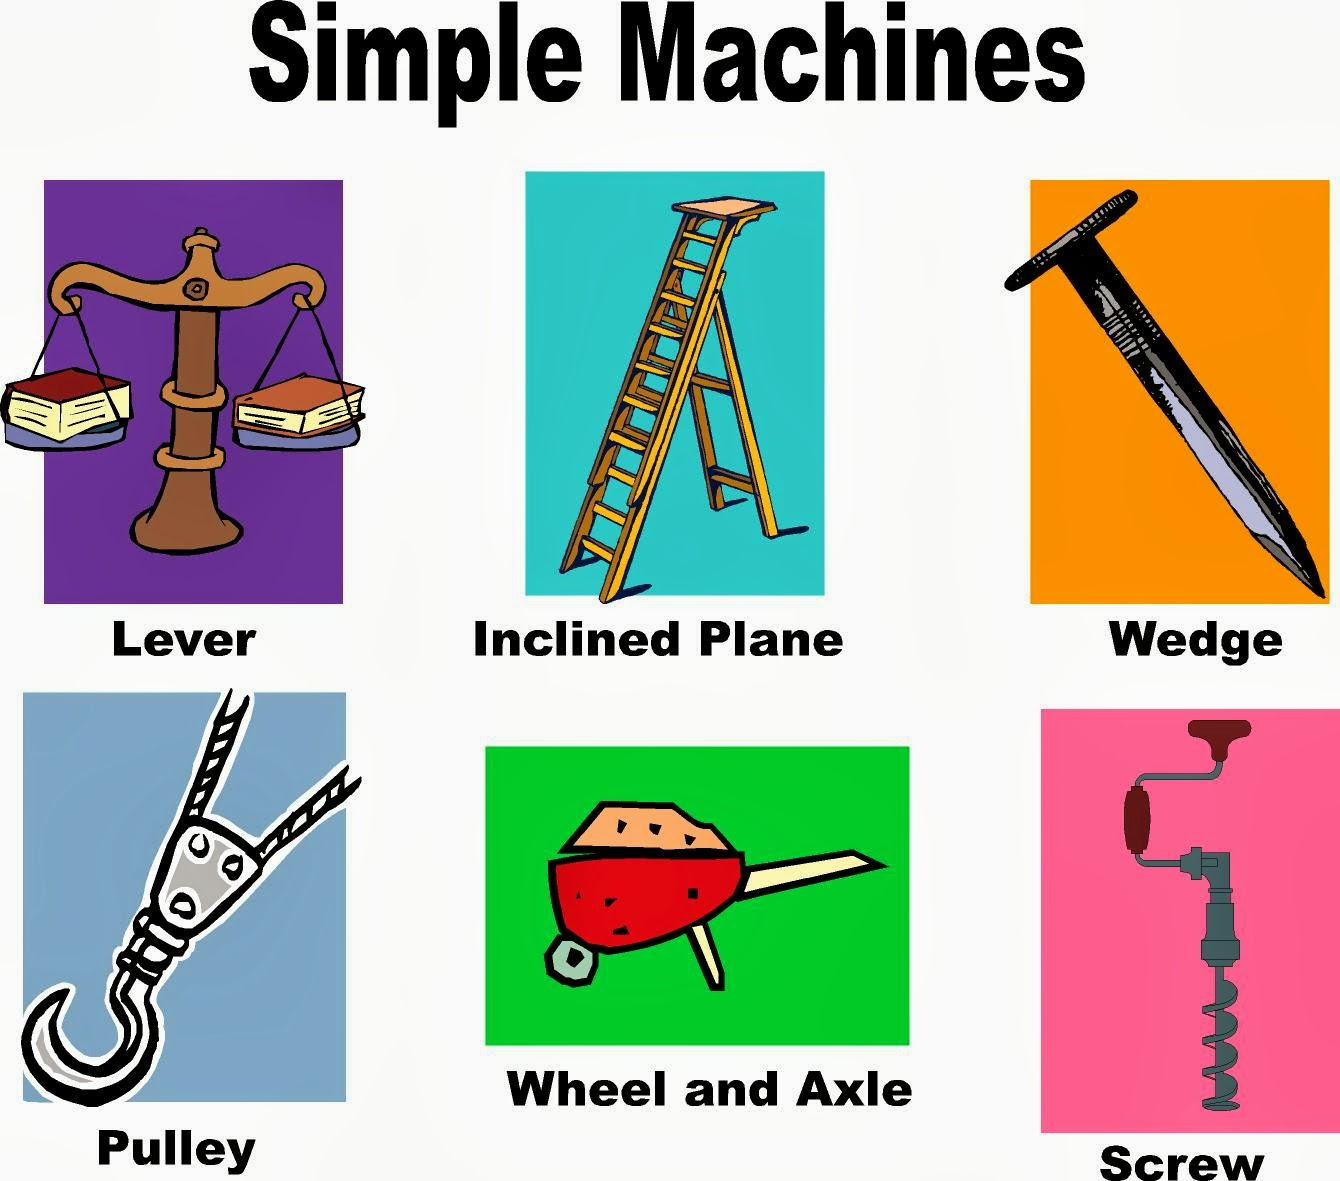 is a a simple machine